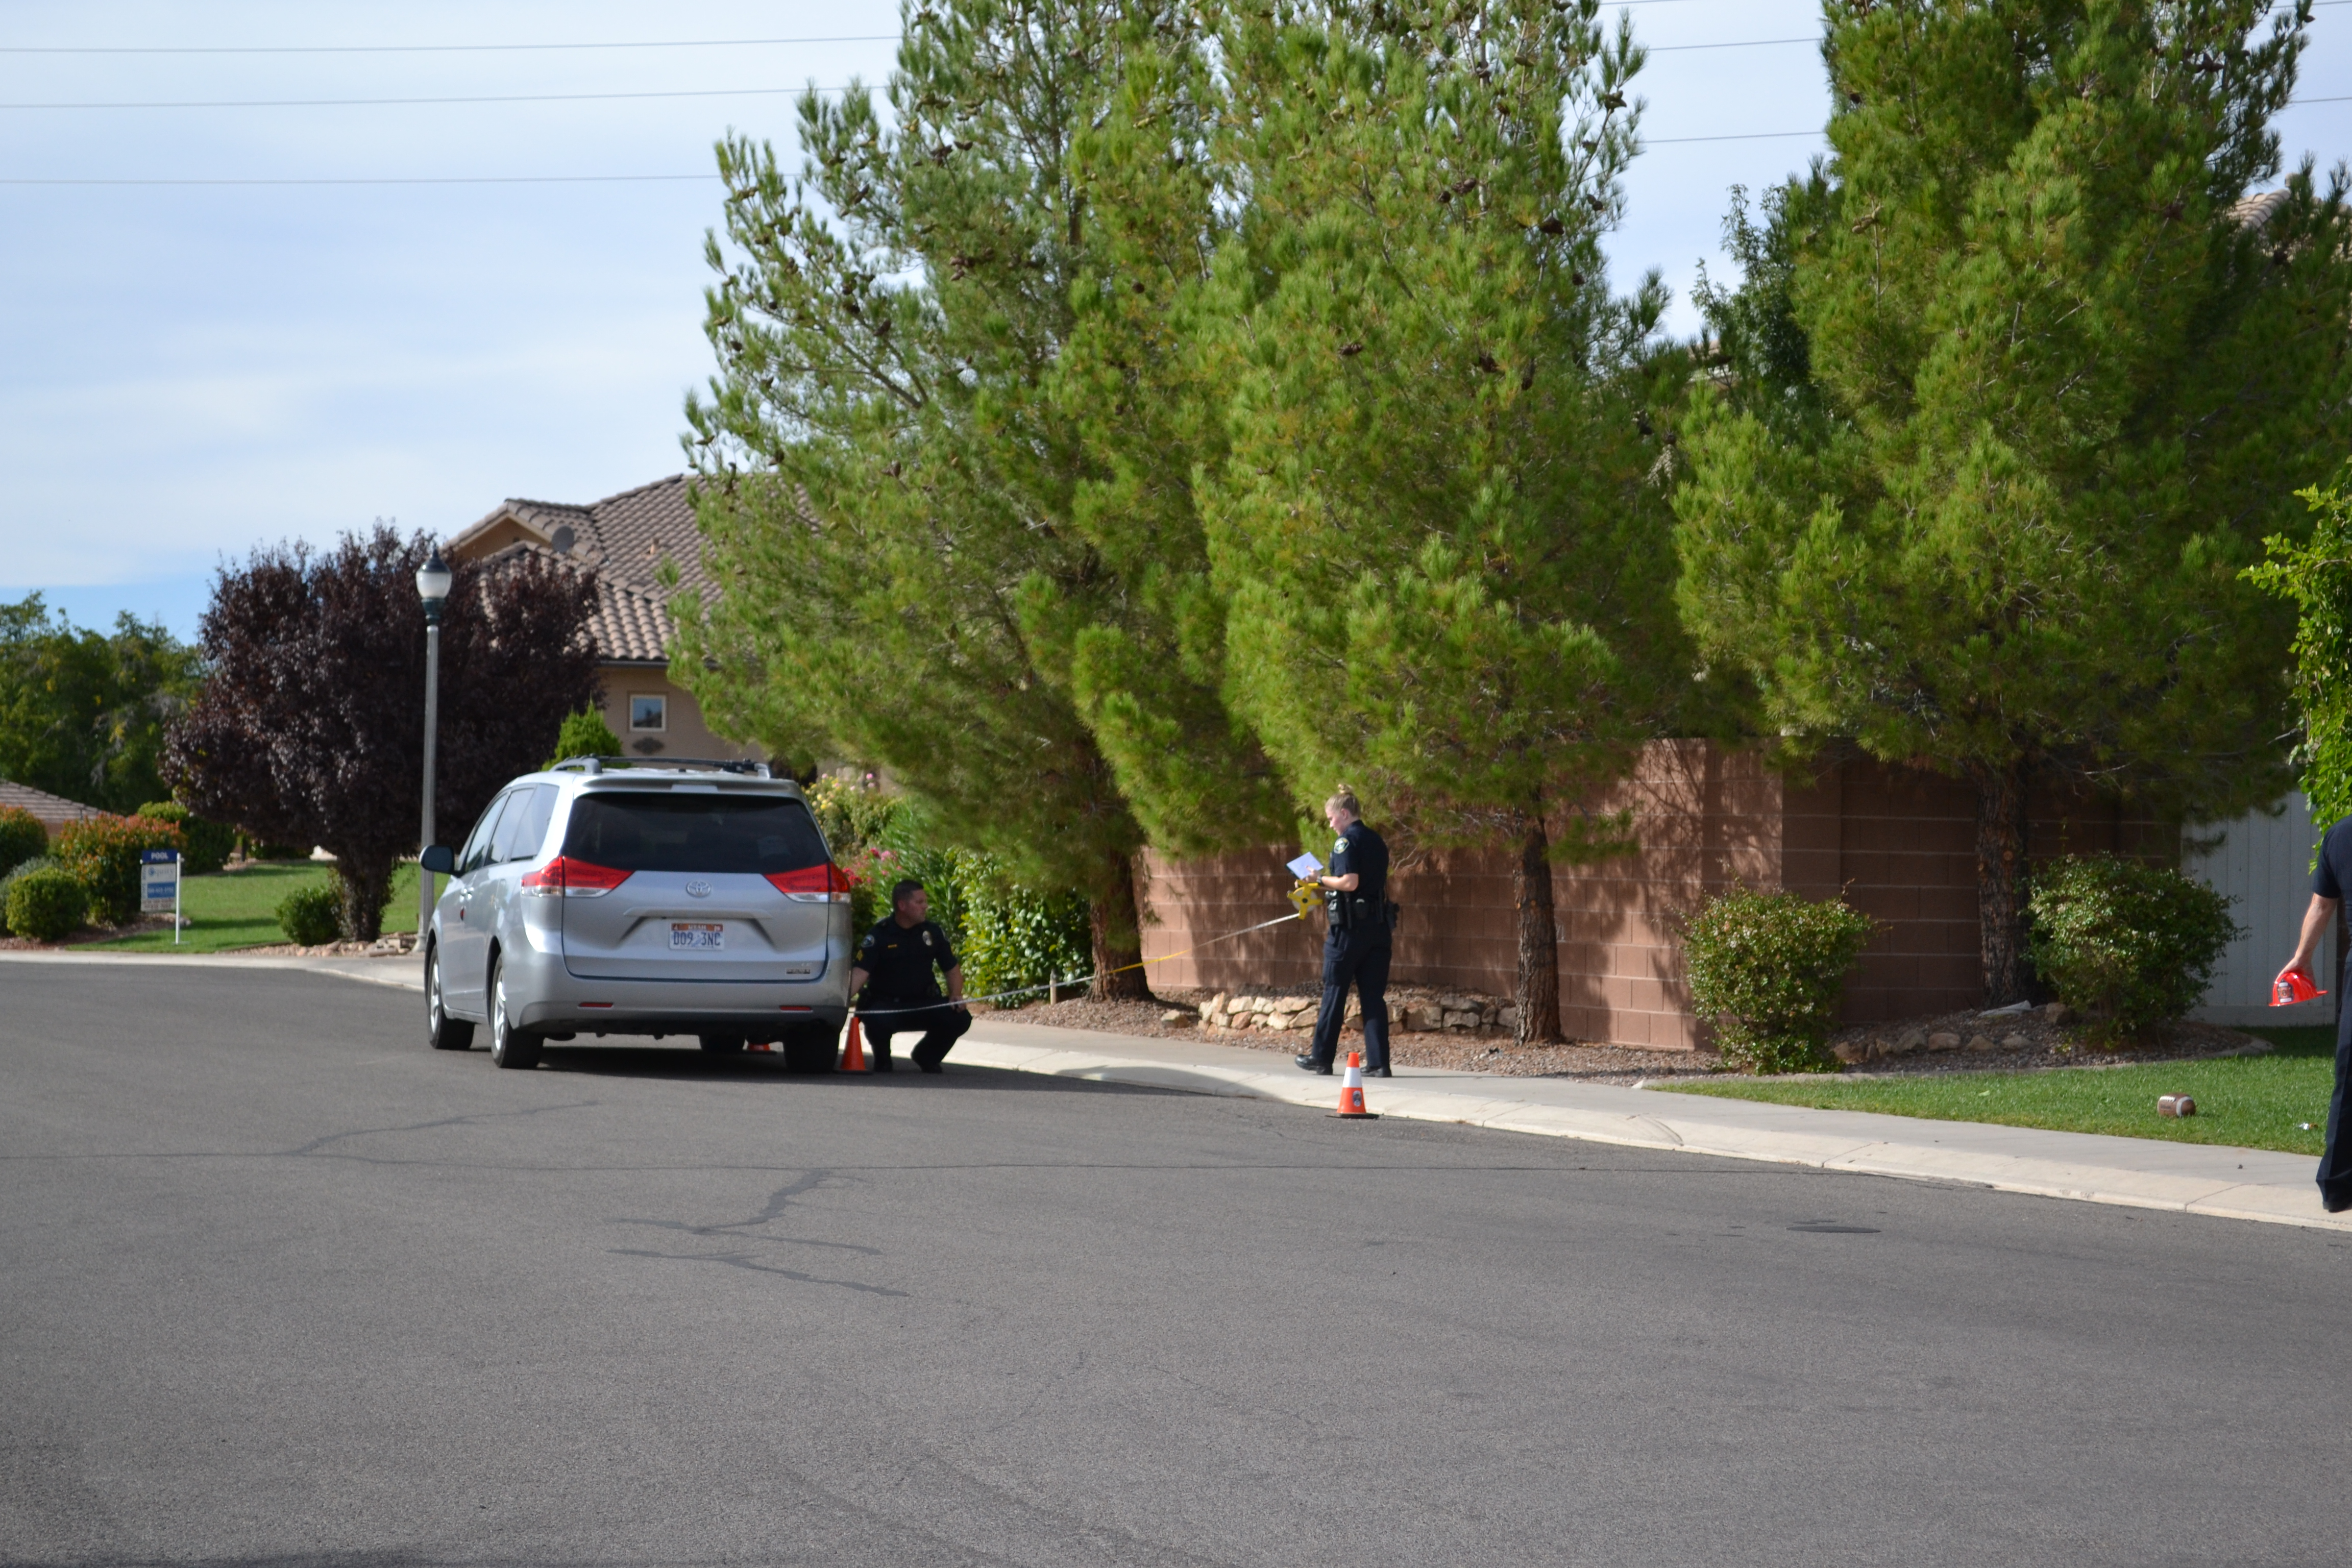 An 18-month-old child was struck by a vehicle in Santa Clara, Utah, Sept 19, 2016 | Photo by Joseph Witham, St. George News